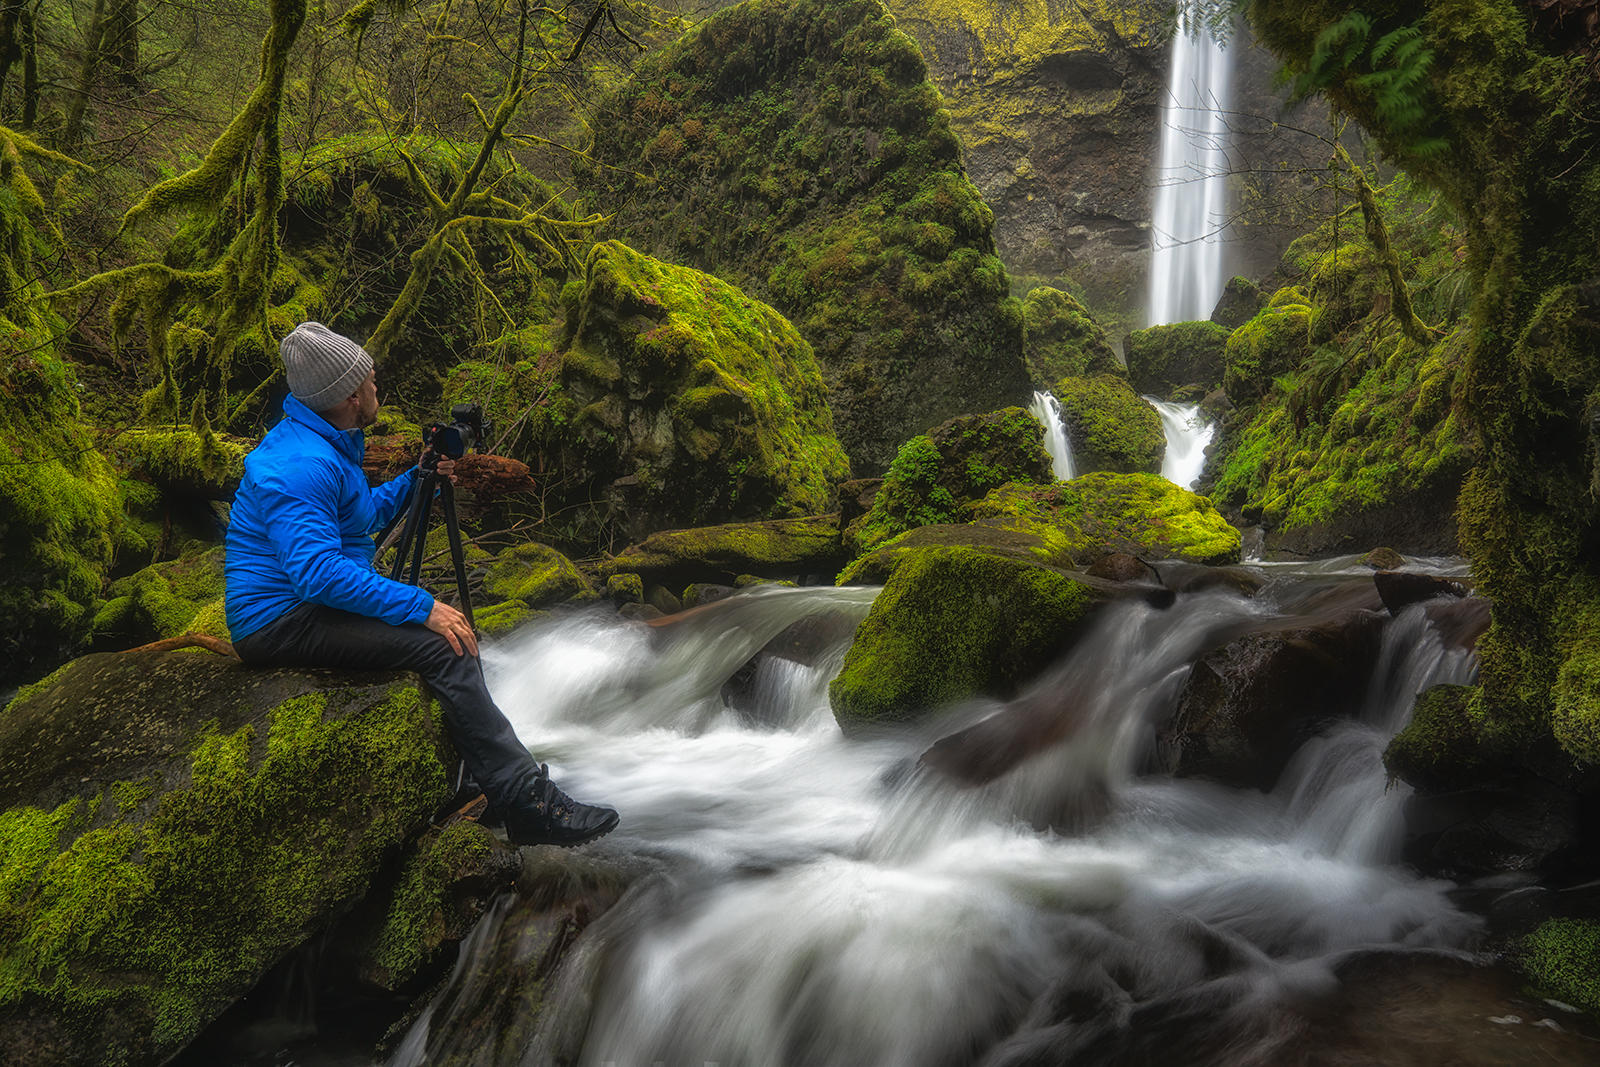 Oregon photography workshop with Astralis Photography